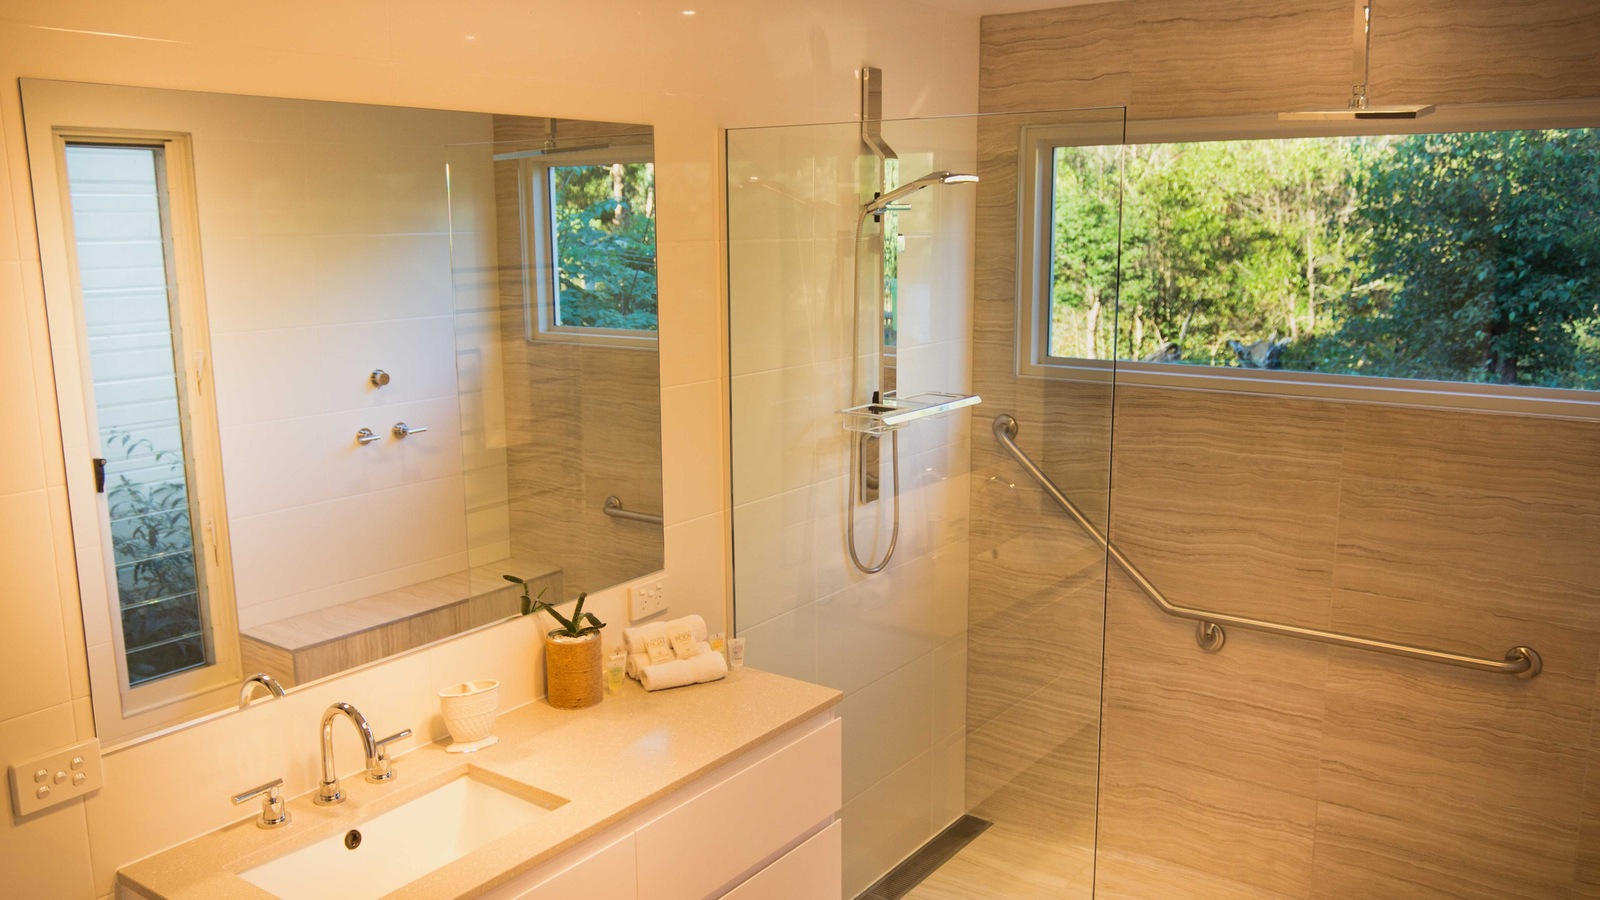 Accessible ensuite bathroom